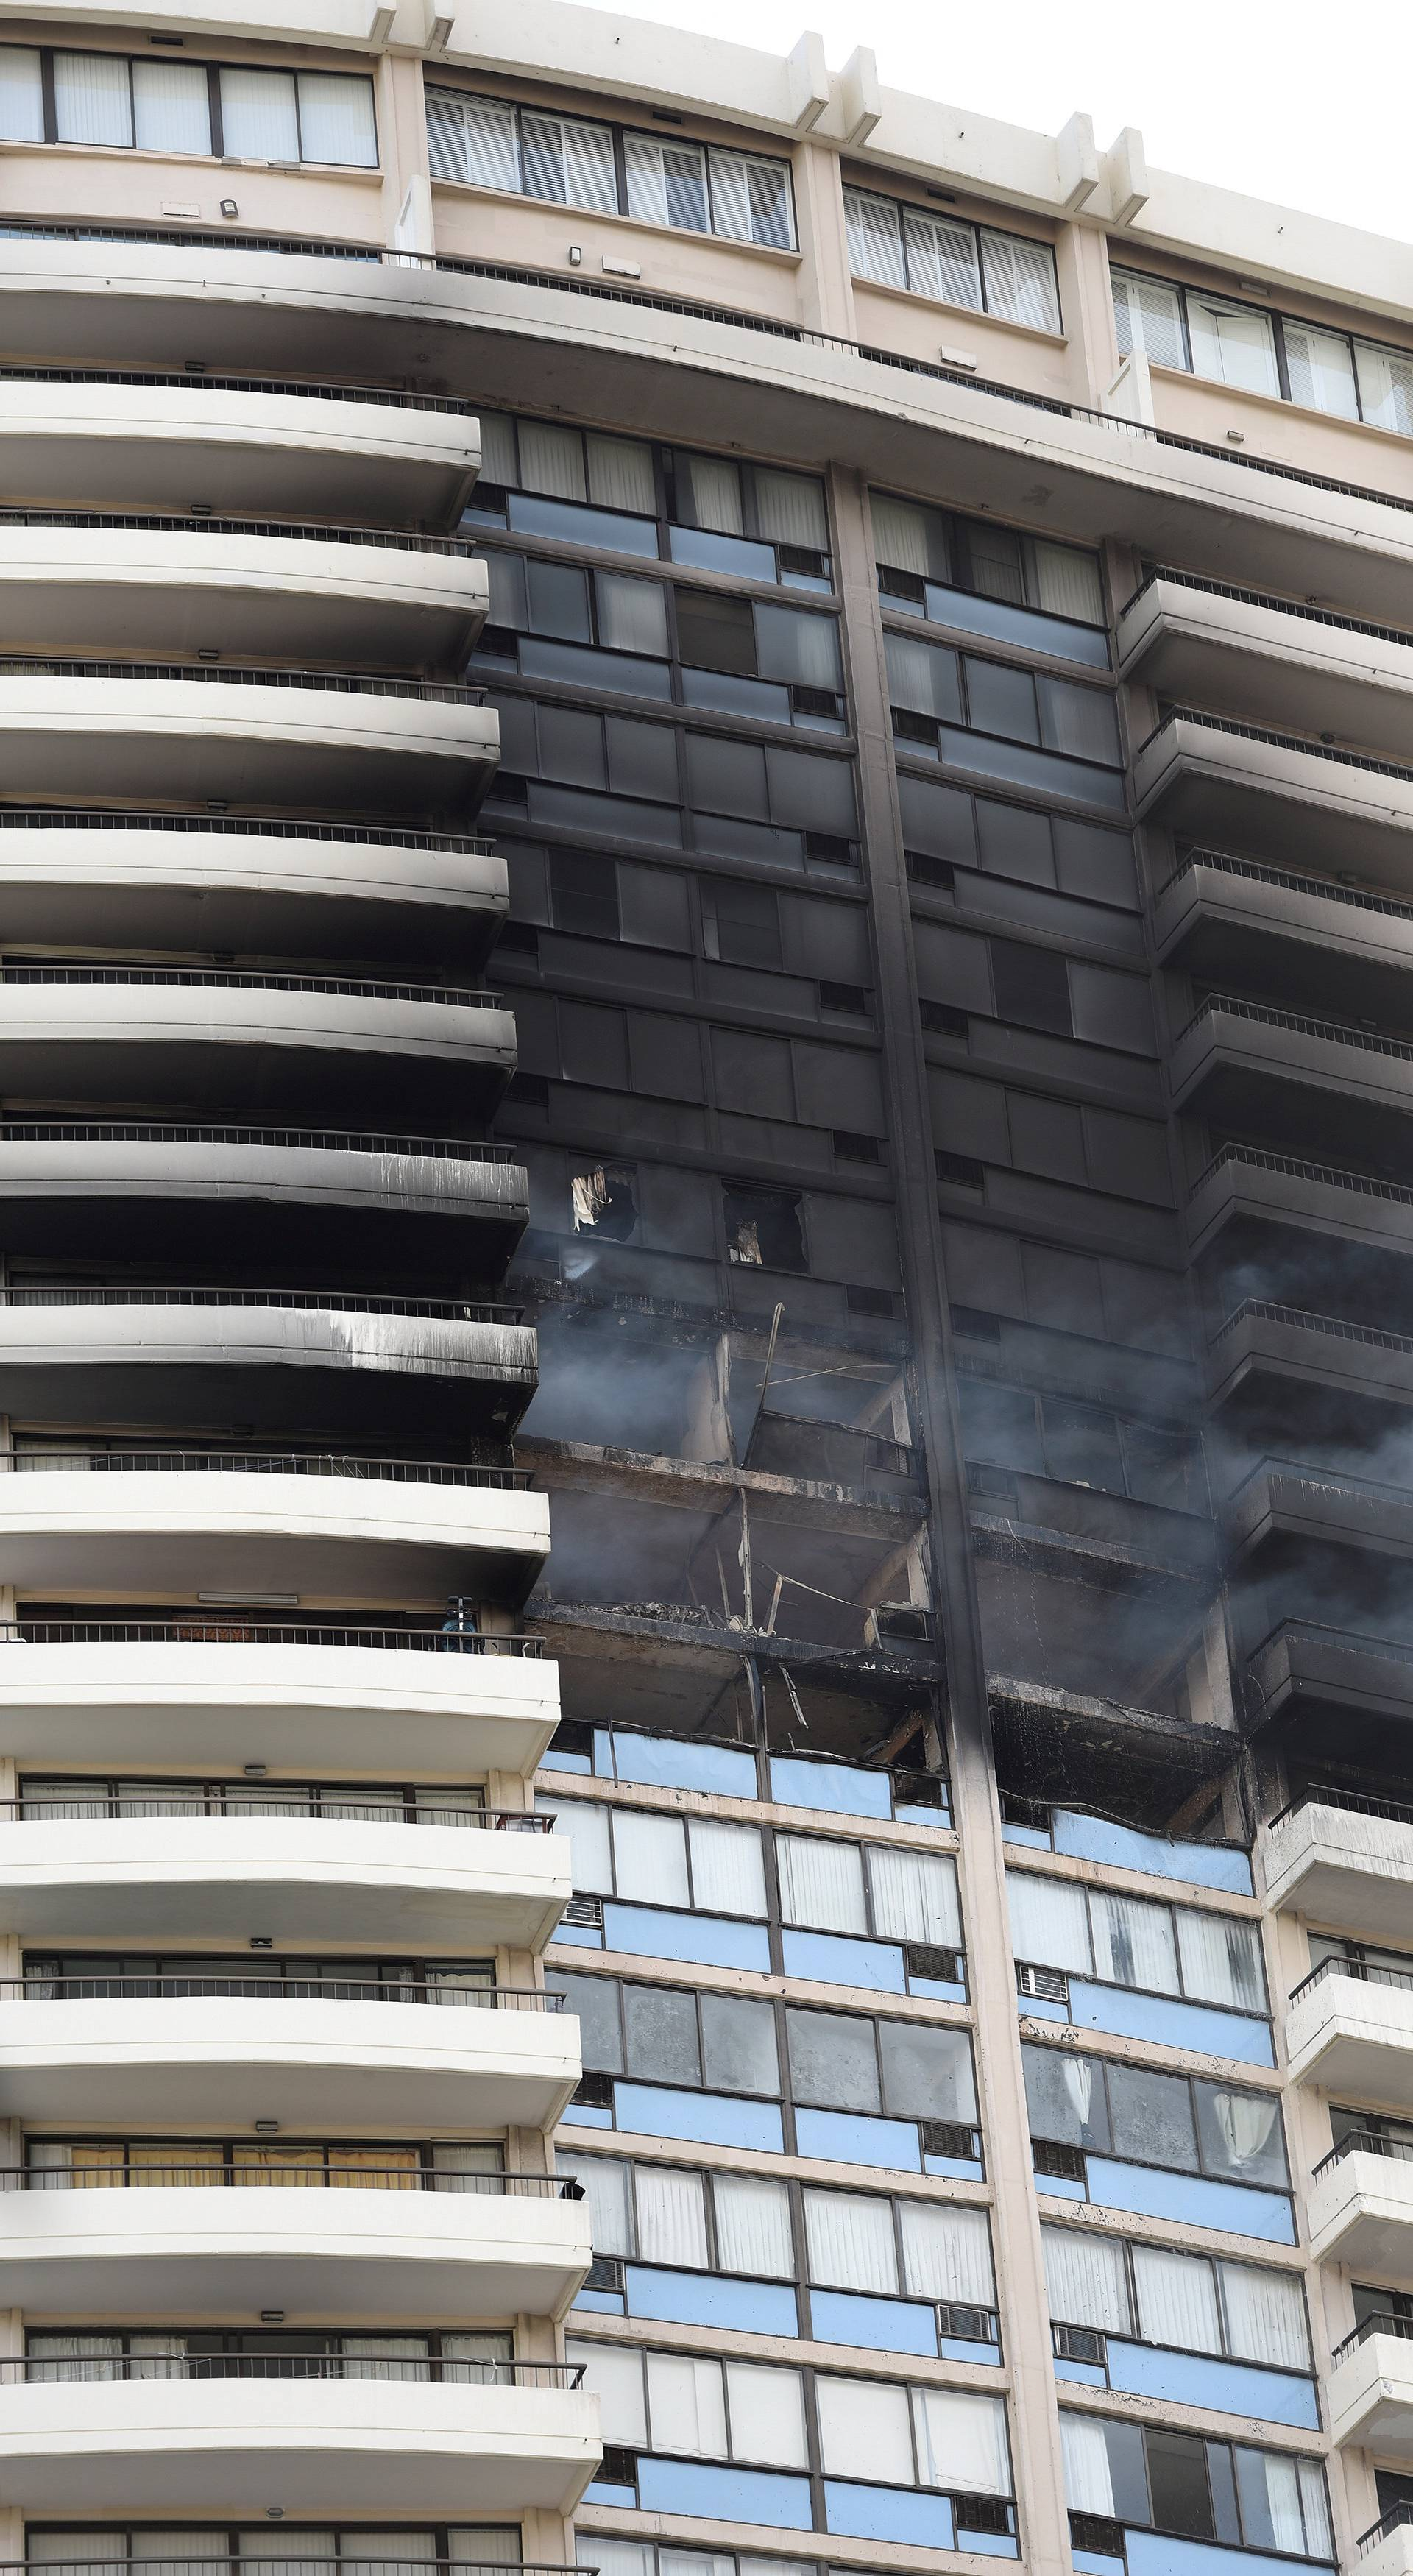 The  Marco Polo apartment building after a fire broke out in it in Honolulu, Hawaii.